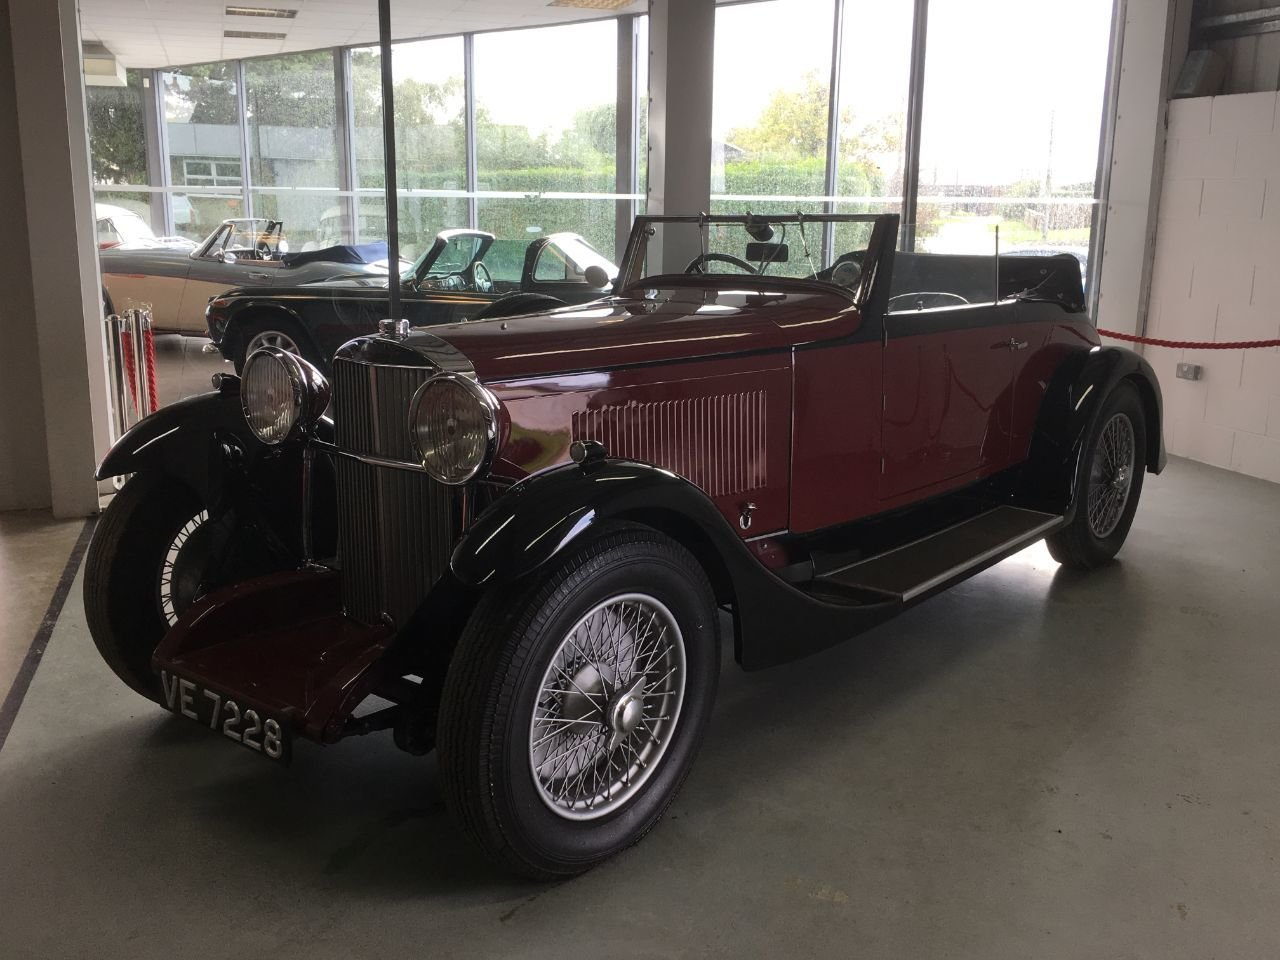 1932 Sunbeam 20 drophead coupe For Sale (picture 1 of 4)